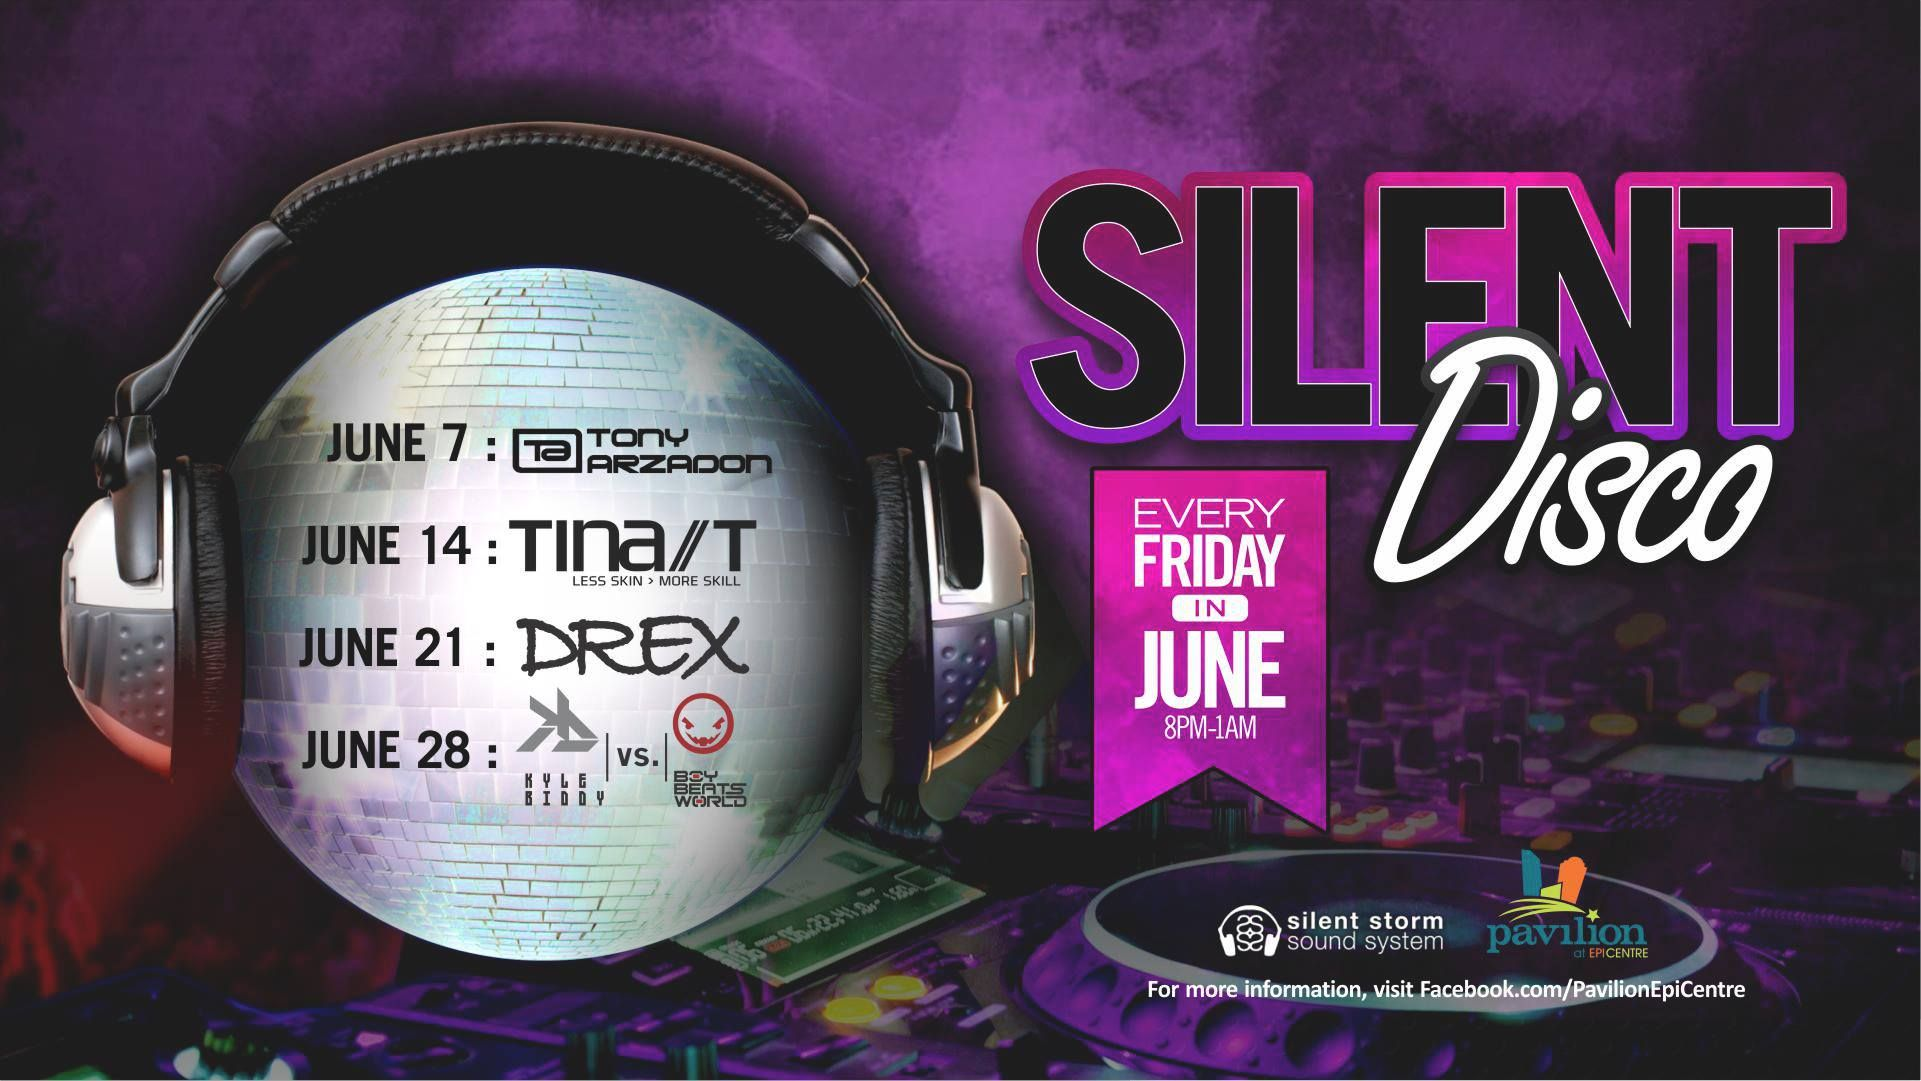 Silent Disco Friday Series At Pavilion At Epicentre Charlotte Nc Storm Sounds Event Flyers Disco